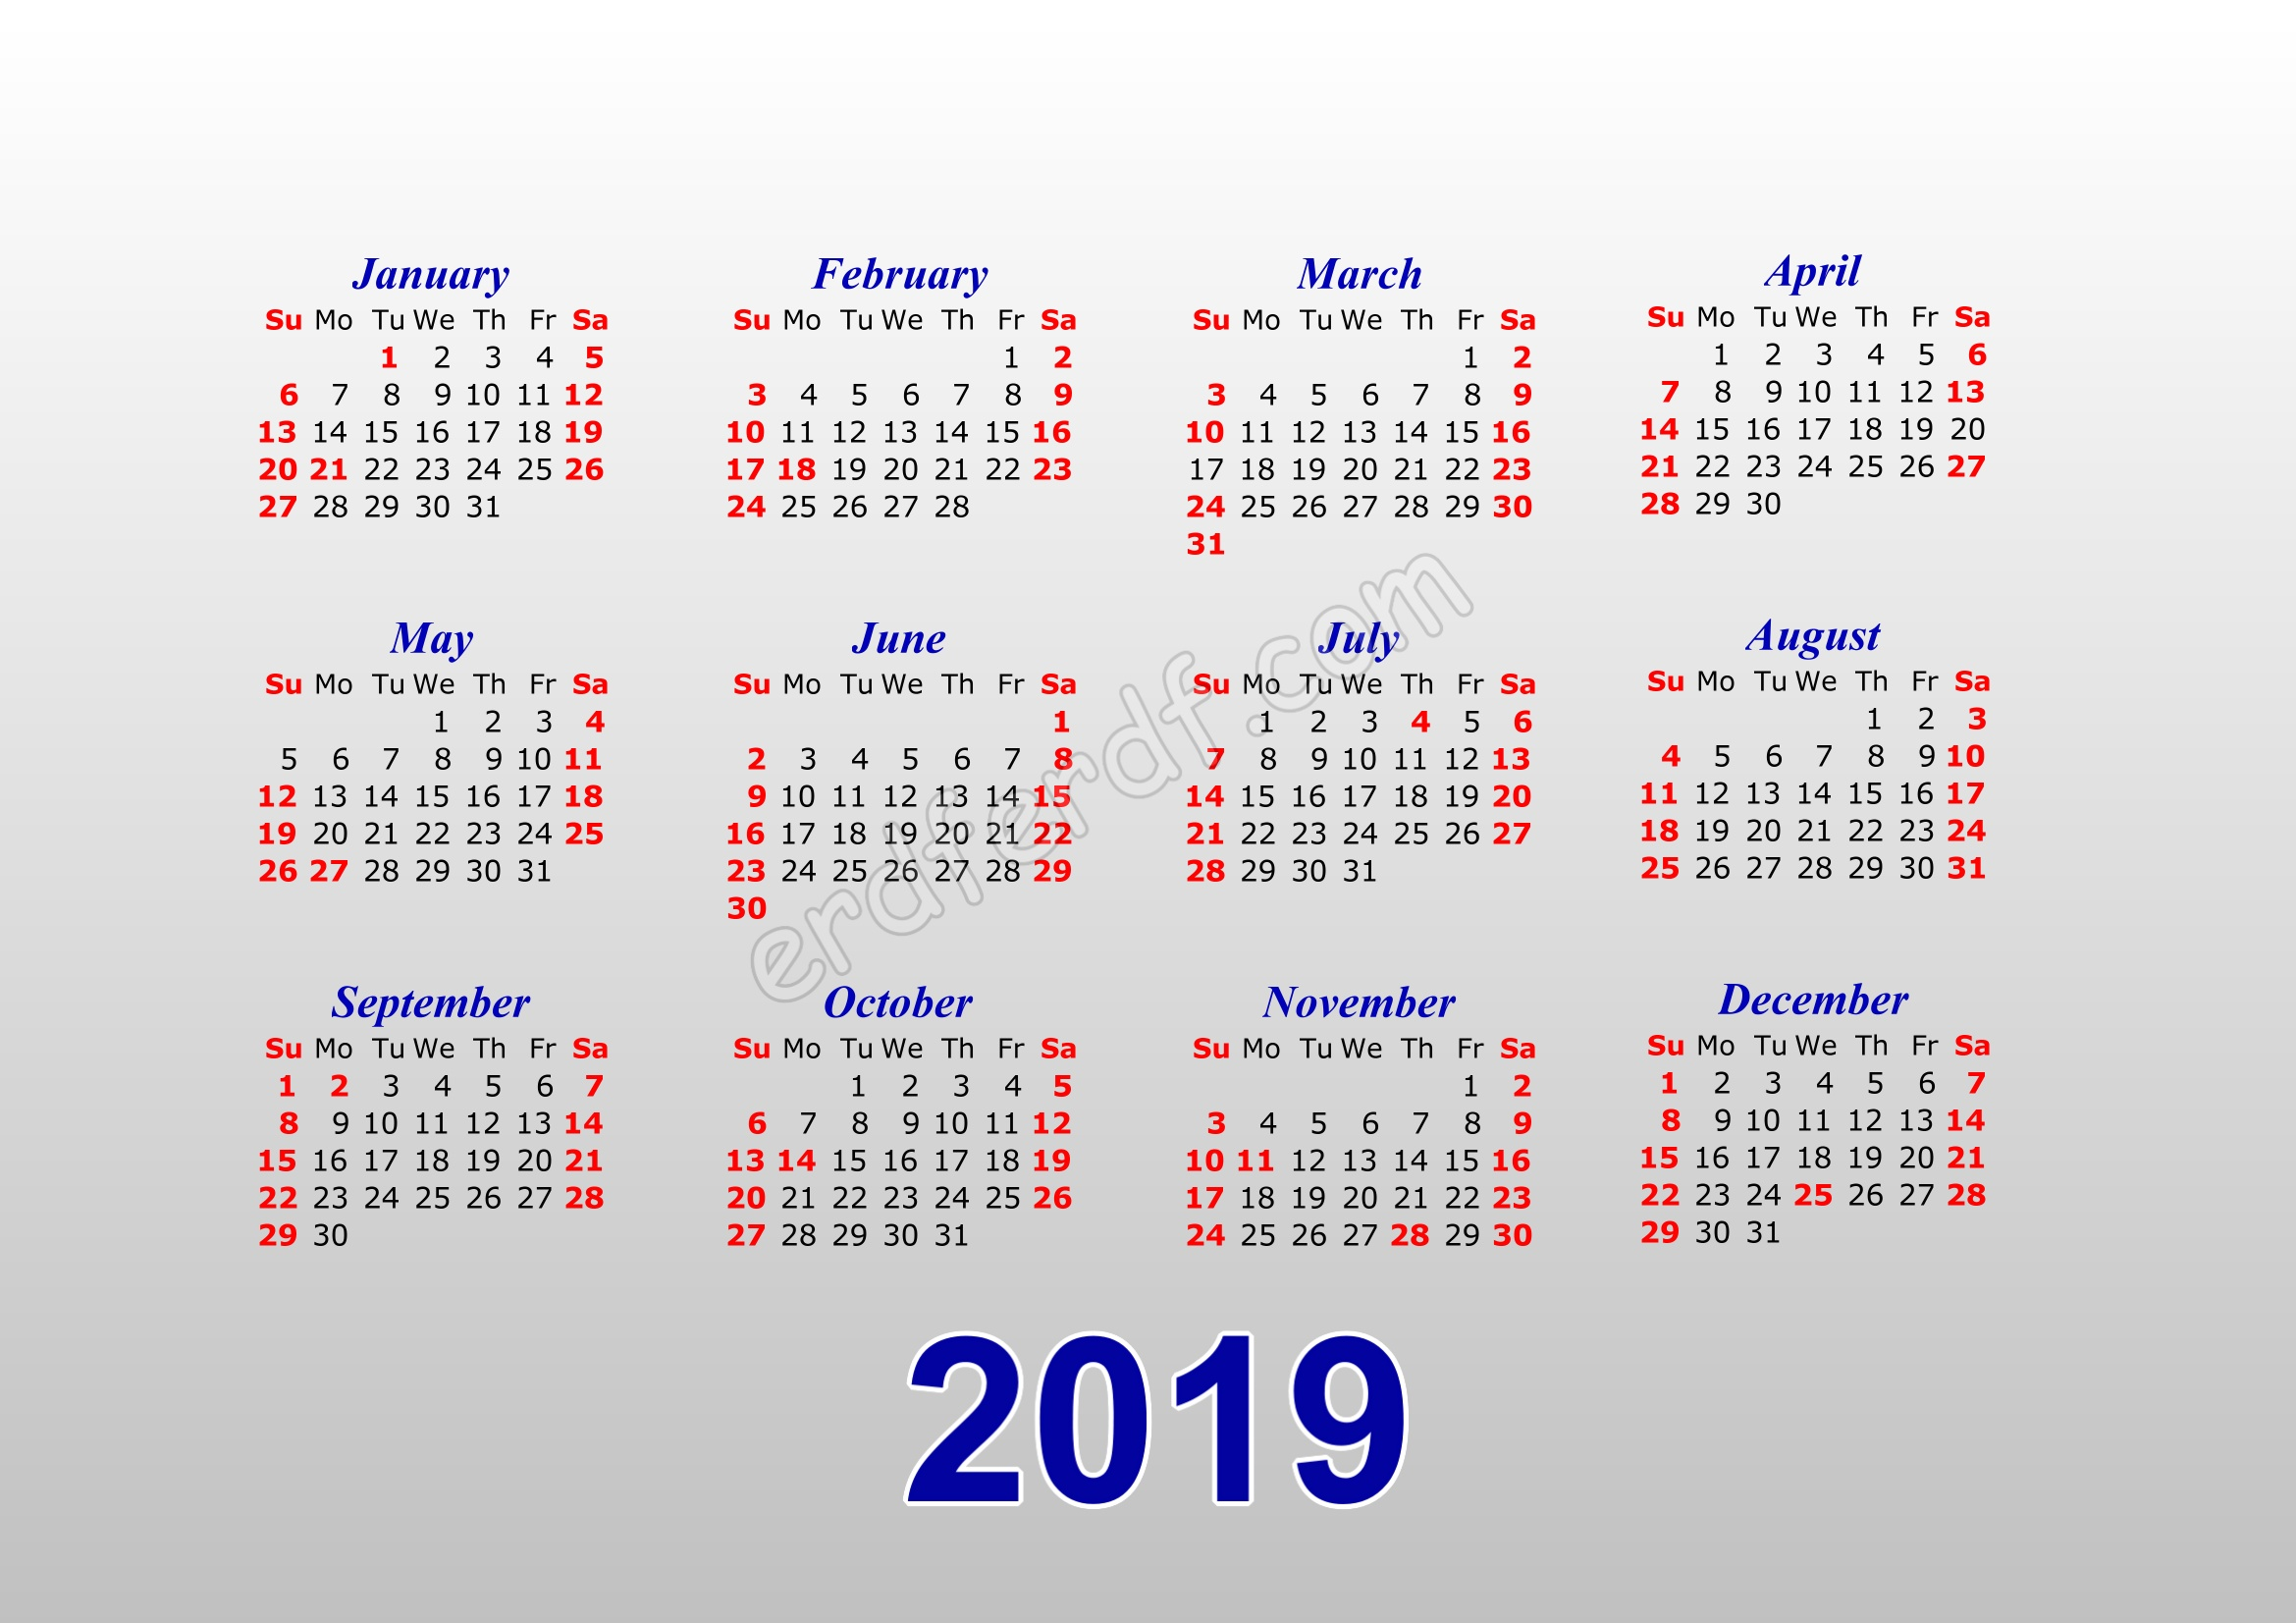 Calendar Template 2019 Illustrator With Background